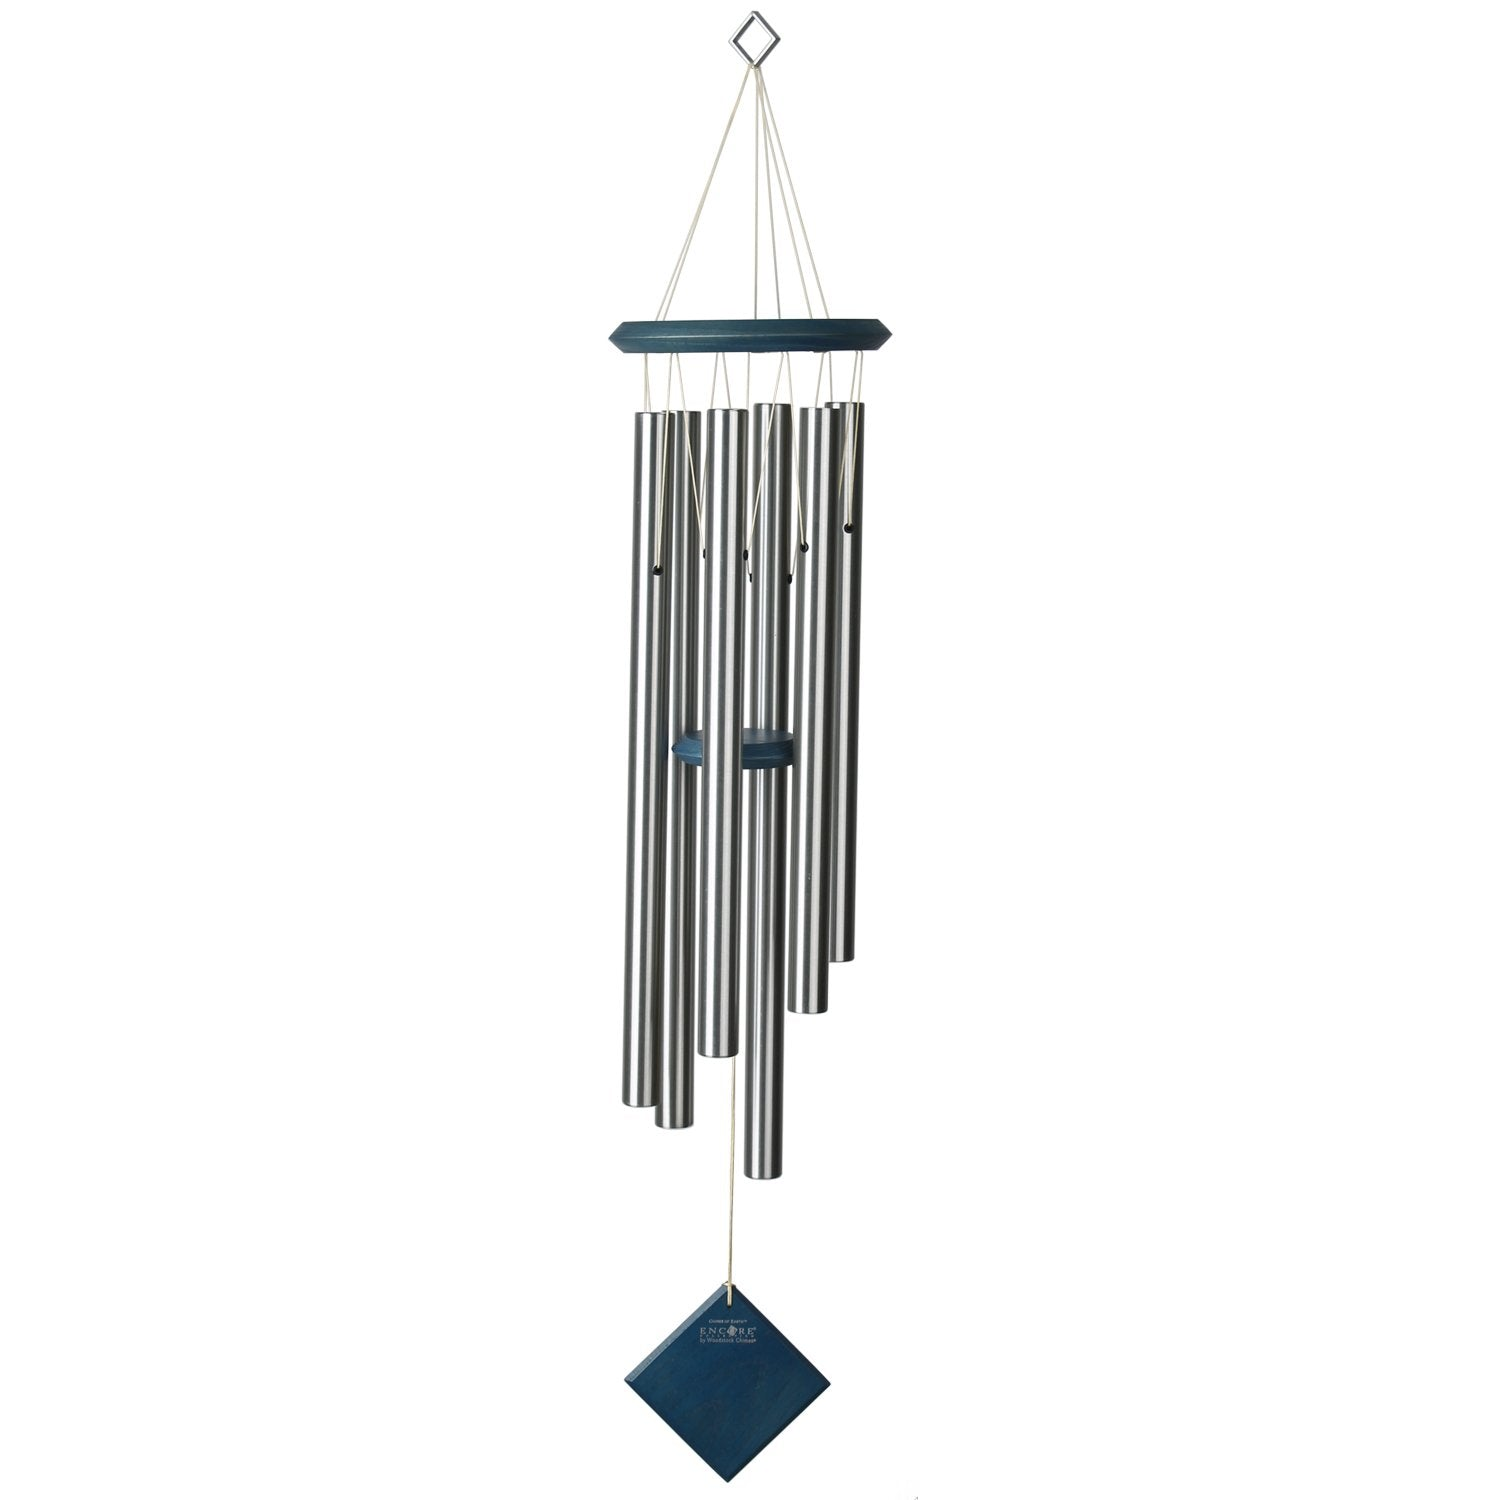 Encore Chimes of Earth - Blue Wash full product image